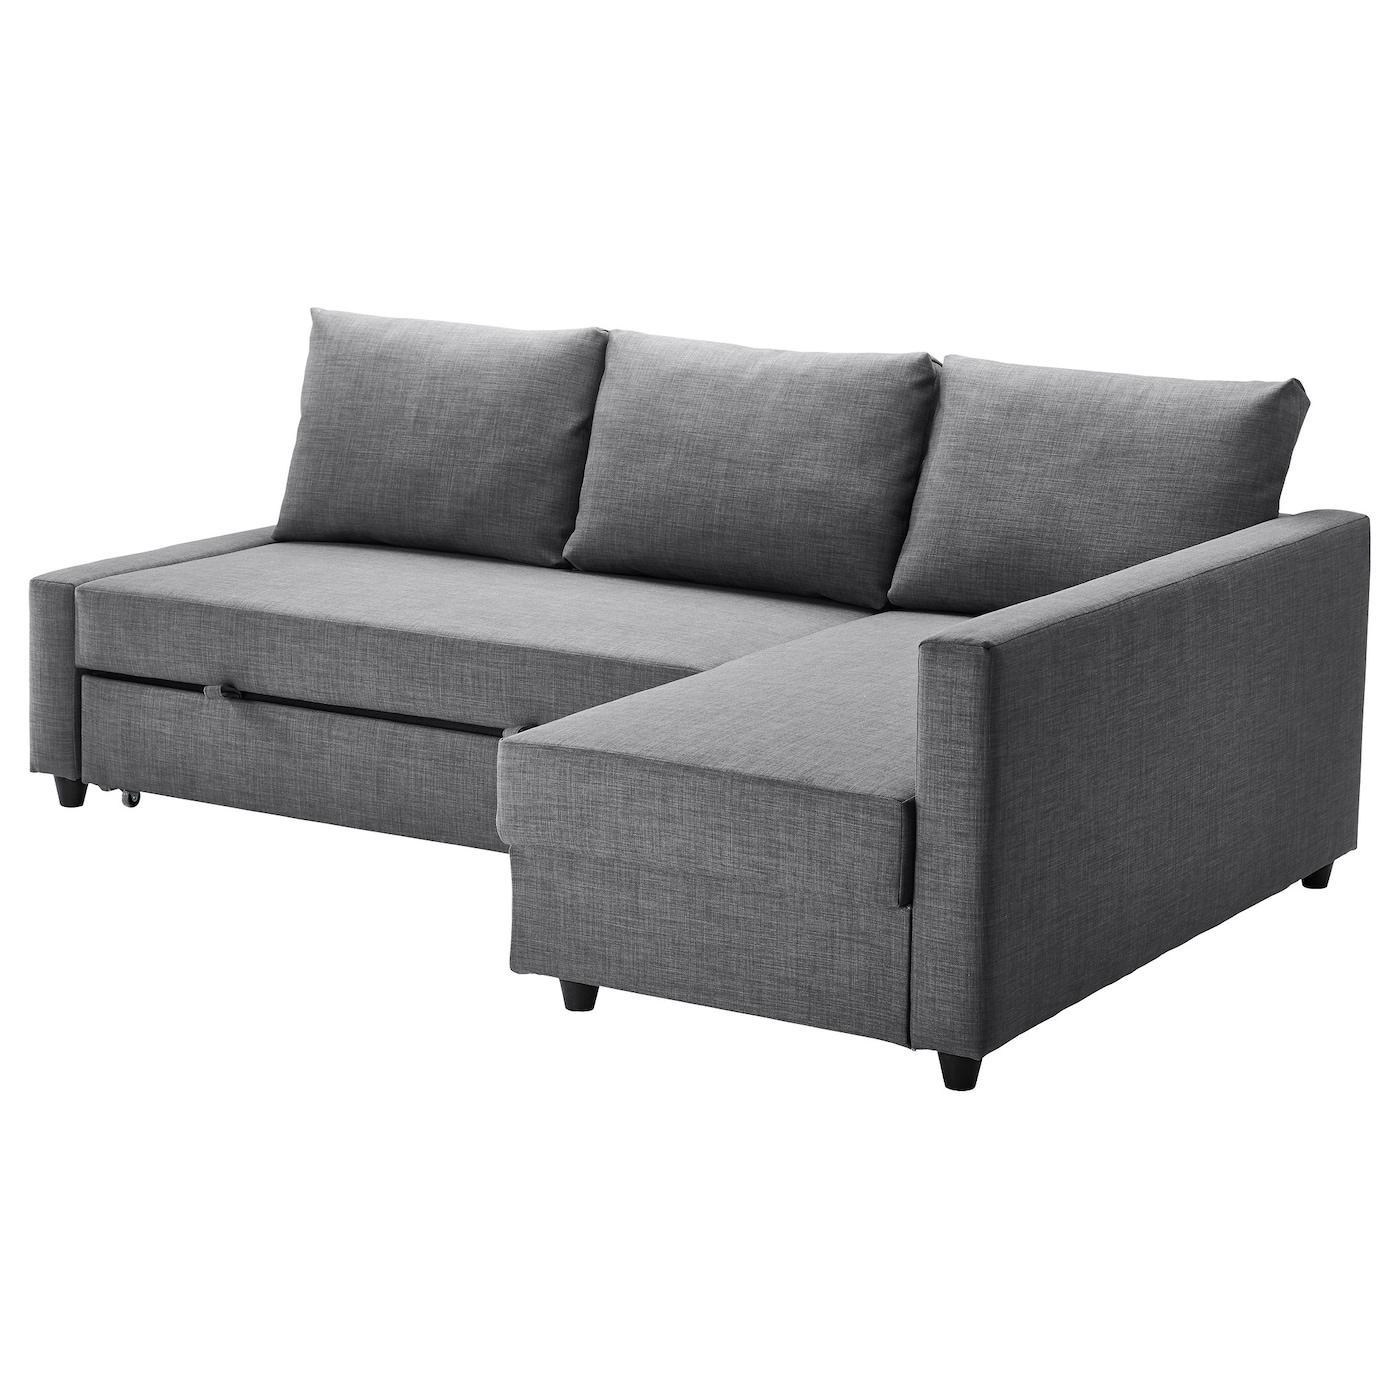 Couch Bed With Storage Part - 28: IKEA FRIHETEN Corner Sofa-bed With Storage Sofa, Chaise Longue And Double  Bed In